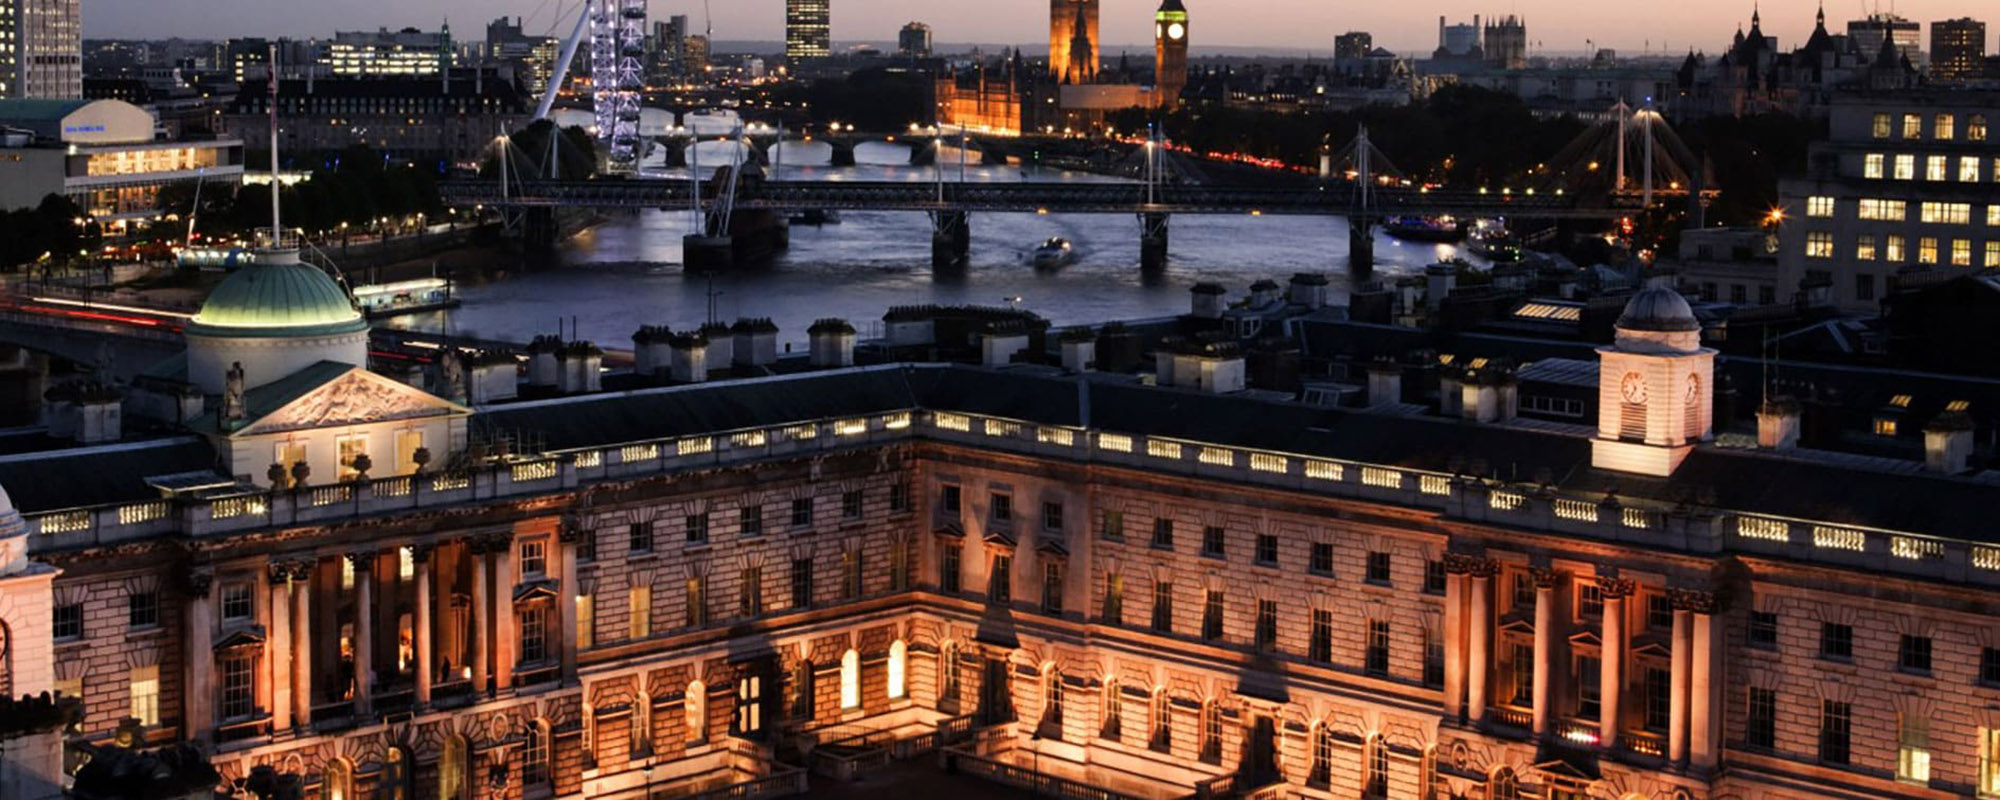 A wide nighttime shot of a large, white Neoclassical building, with the London skyline behind.